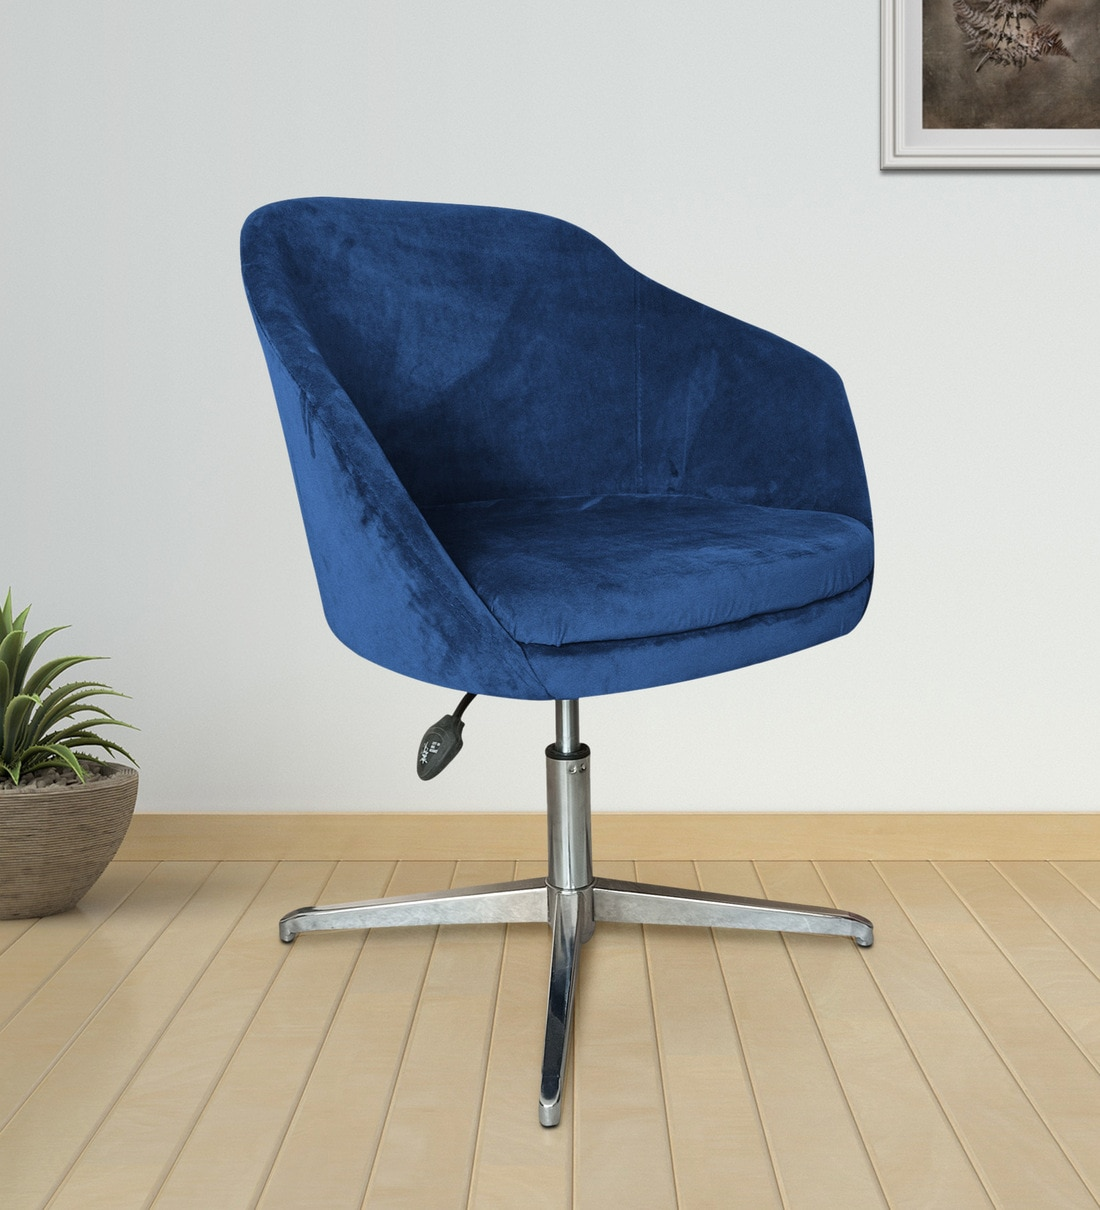 Picture of: Buy Alexa Gest Accent Chair Lounge In Dark Blue By Furniturstation Online Guest Chairs Chairs Furniture Pepperfry Product